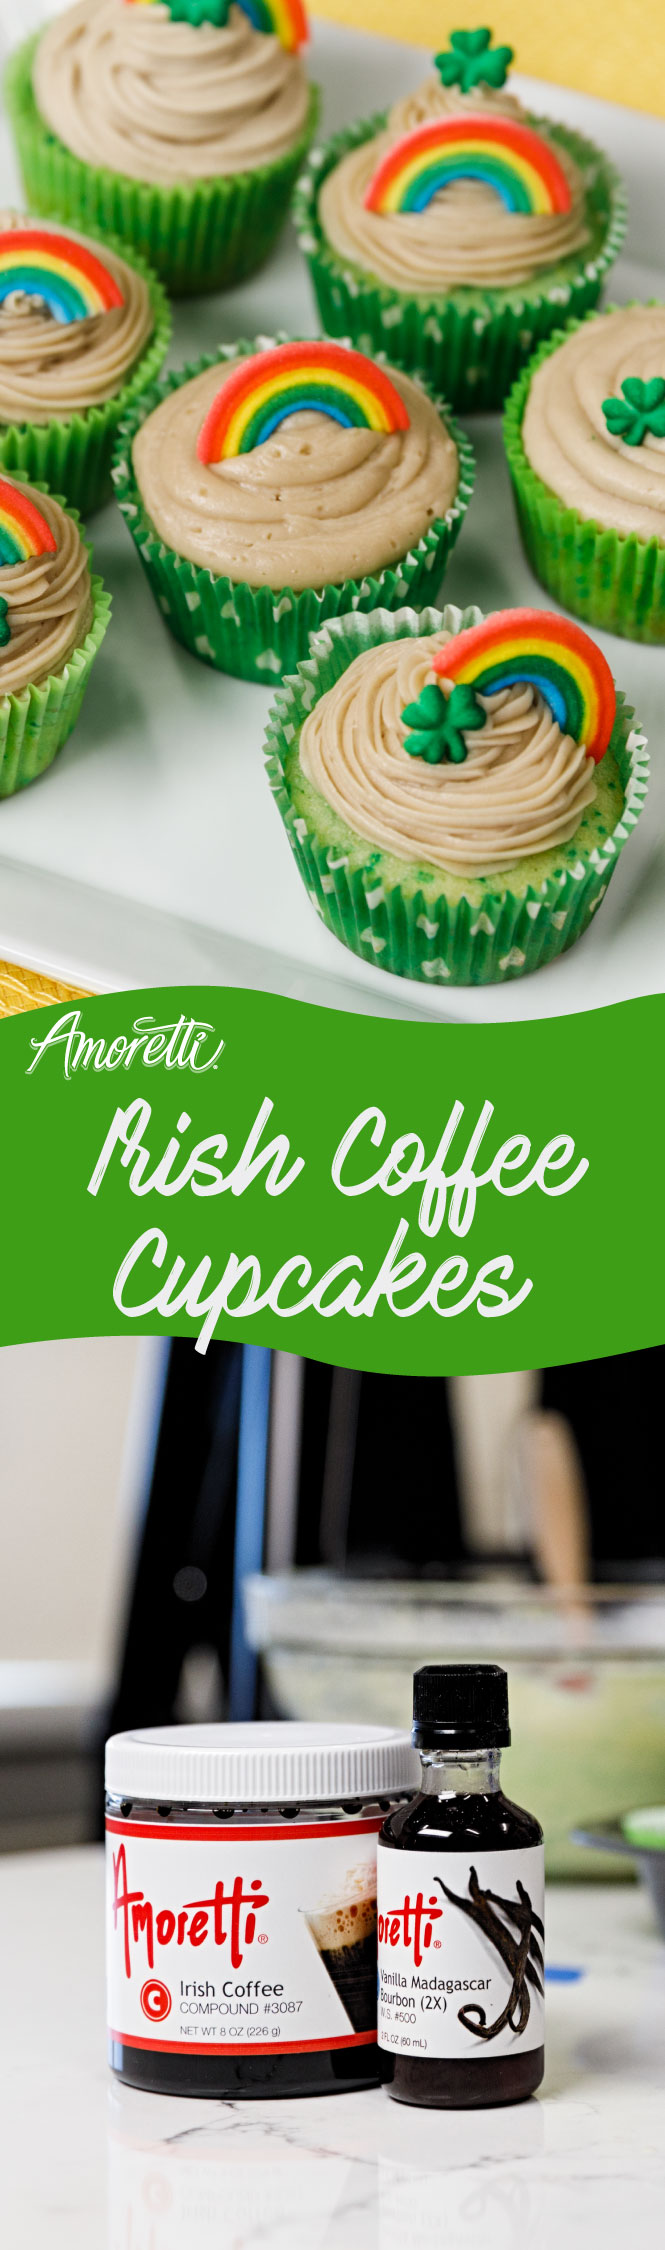 Irish Coffee Frosting gives these cupcakes a festive touch!